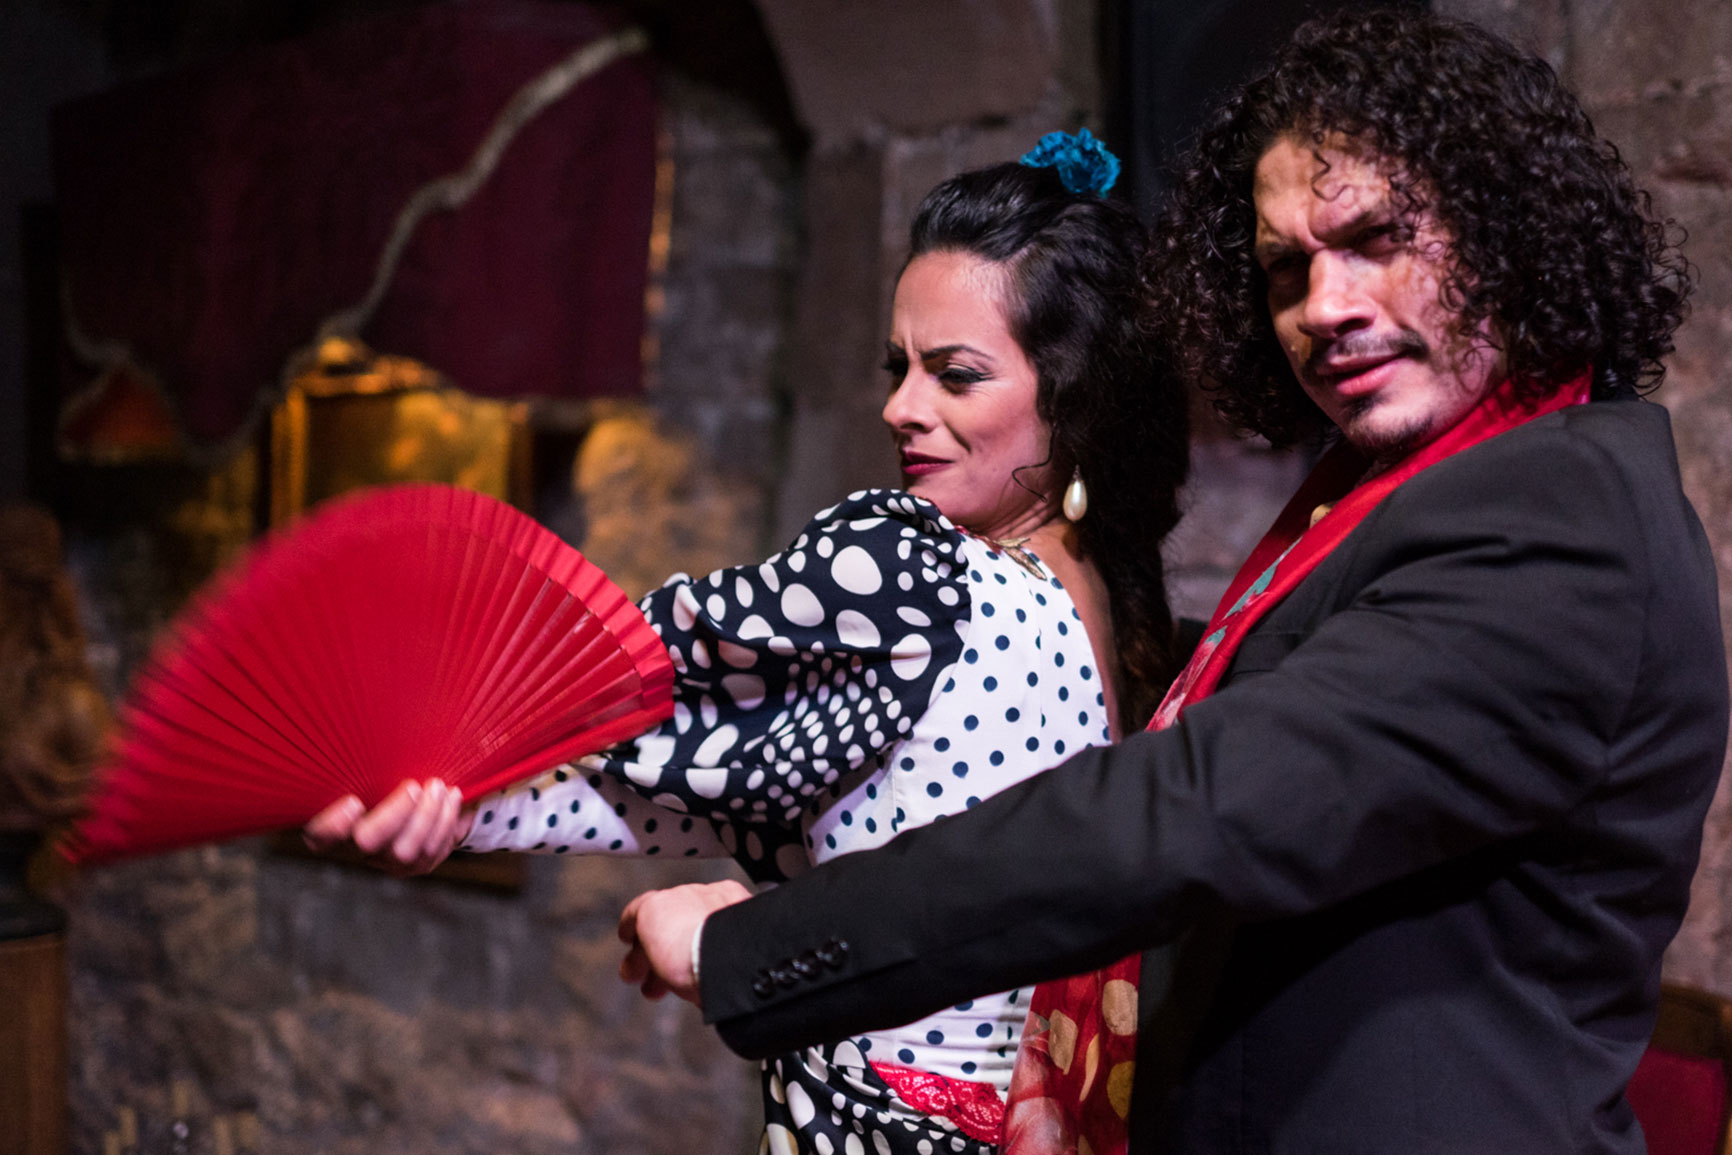 Palau Dalmases Tickets I Flamenco show in Barcelona